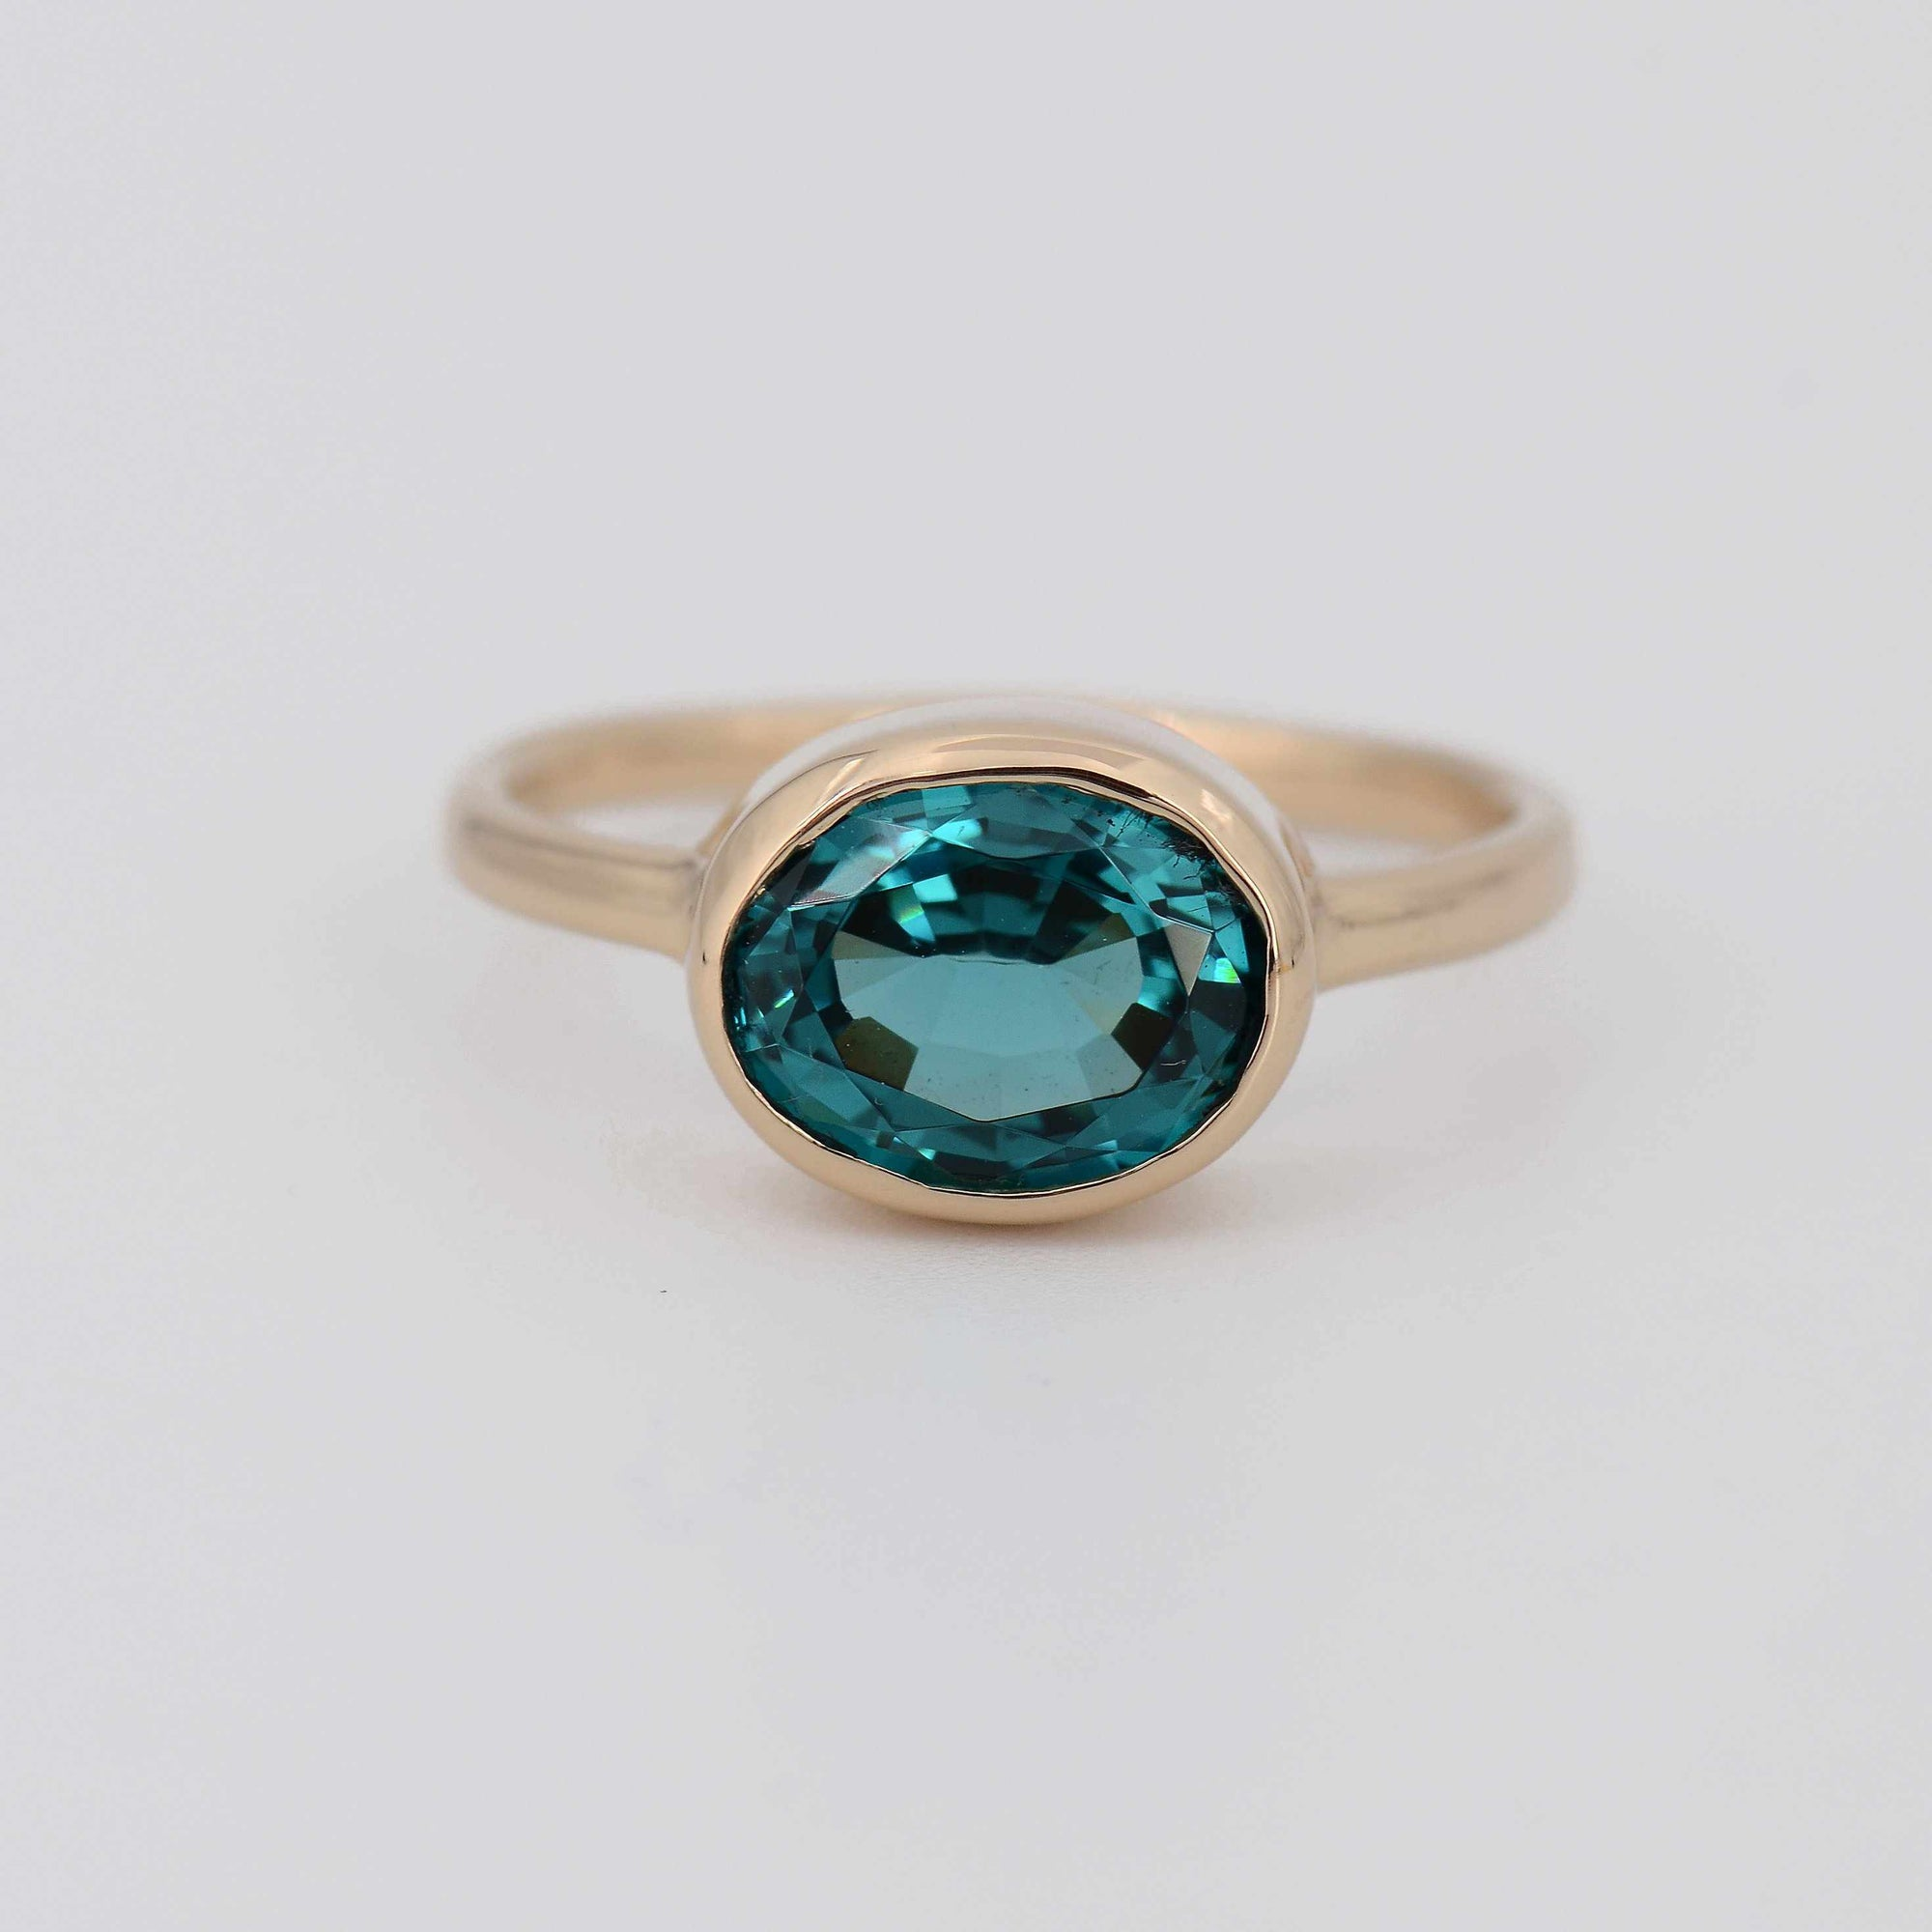 14k Gold Teal Sapphire Ring, Blue Green Sapphire, Montana Sapphire, September Birthstone, Stackable Solid Gold, Solitaire Bezel Set Oval Cut